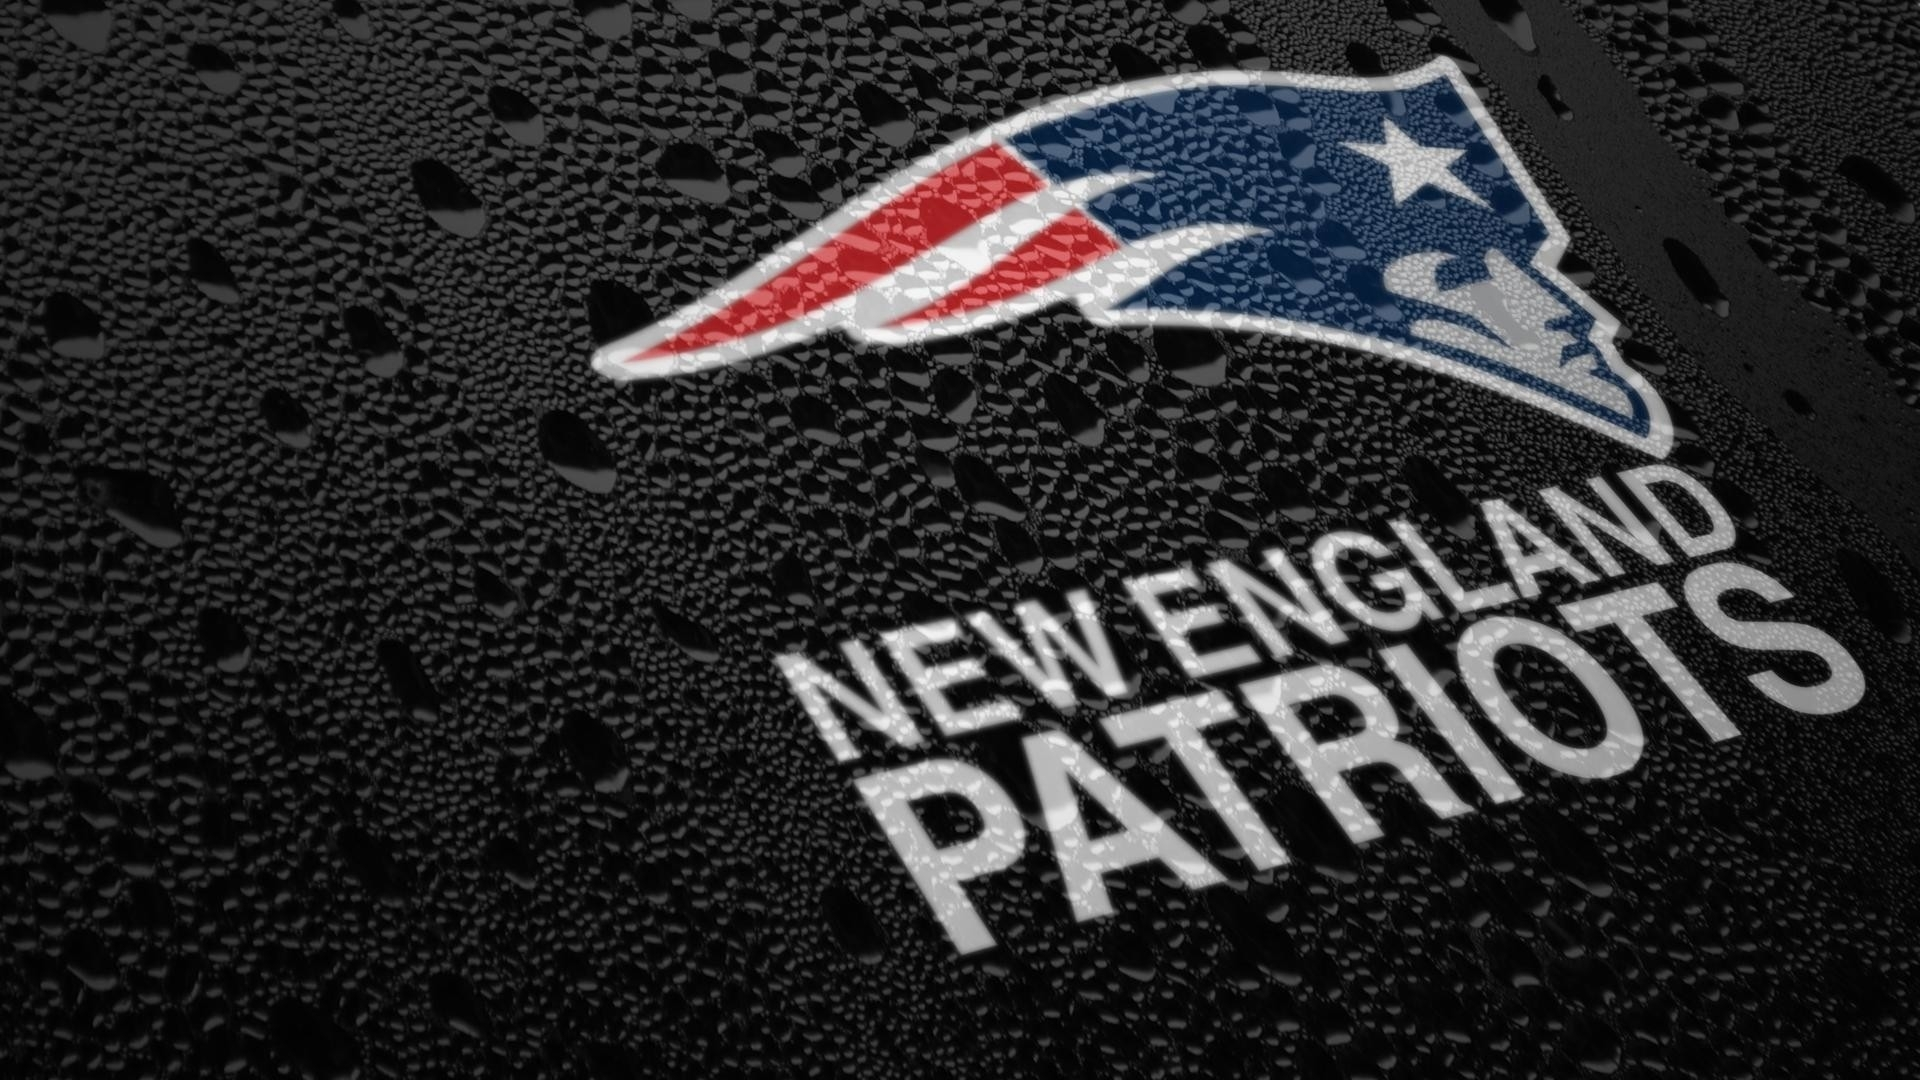 10 Top New England Patriots Screensaver FULL HD 1920×1080 For PC Desktop